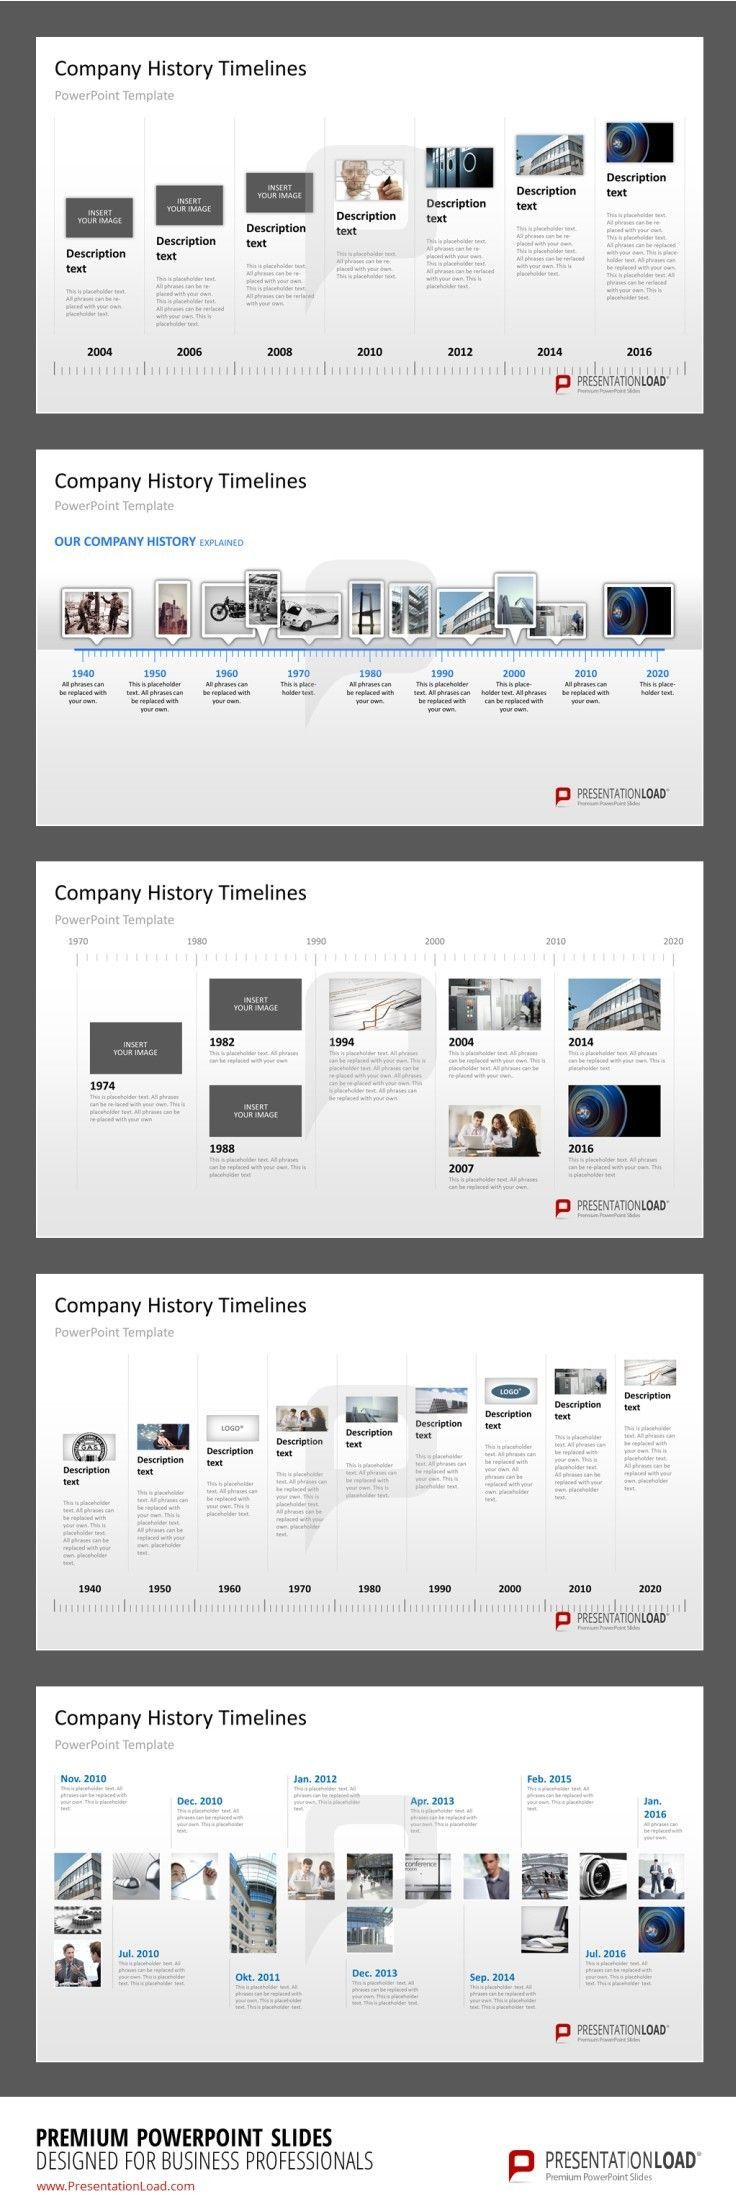 Company History Milestones in a Timeline PowerPoint Template  #presentationload www.presentationl...: